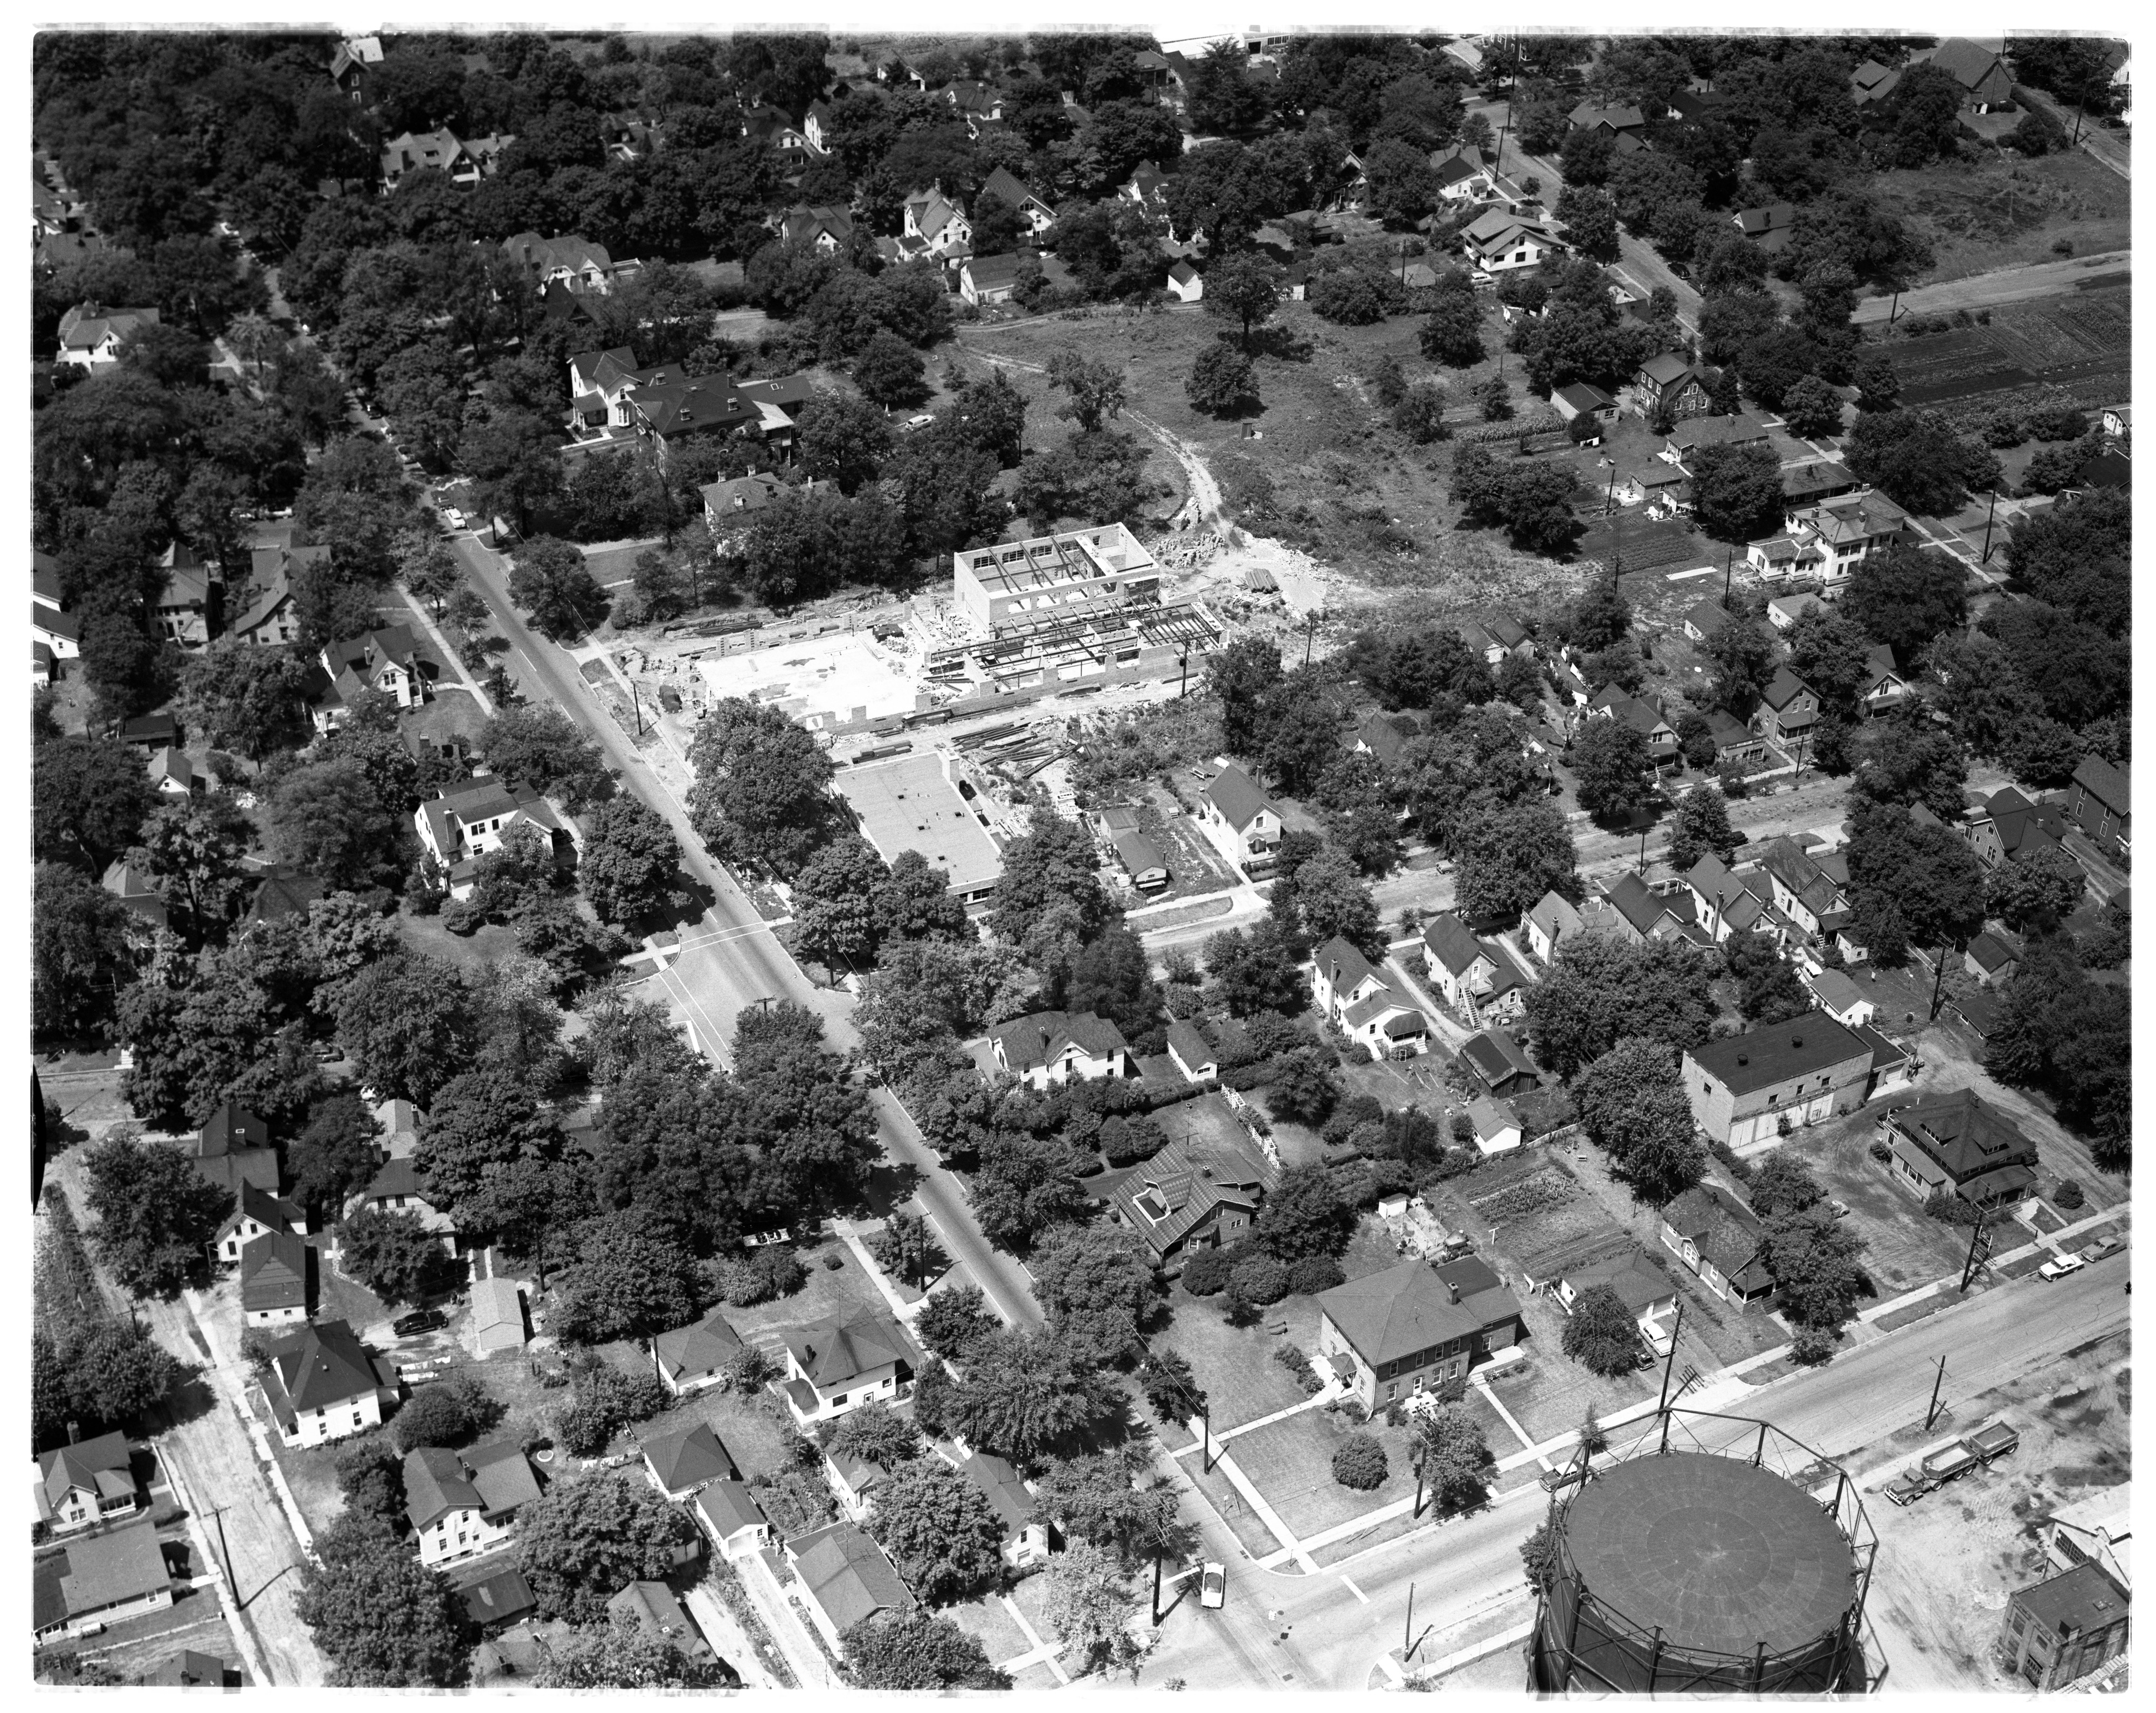 Aerial Photograph of Construction of a Ypsilanti School, 1955 image